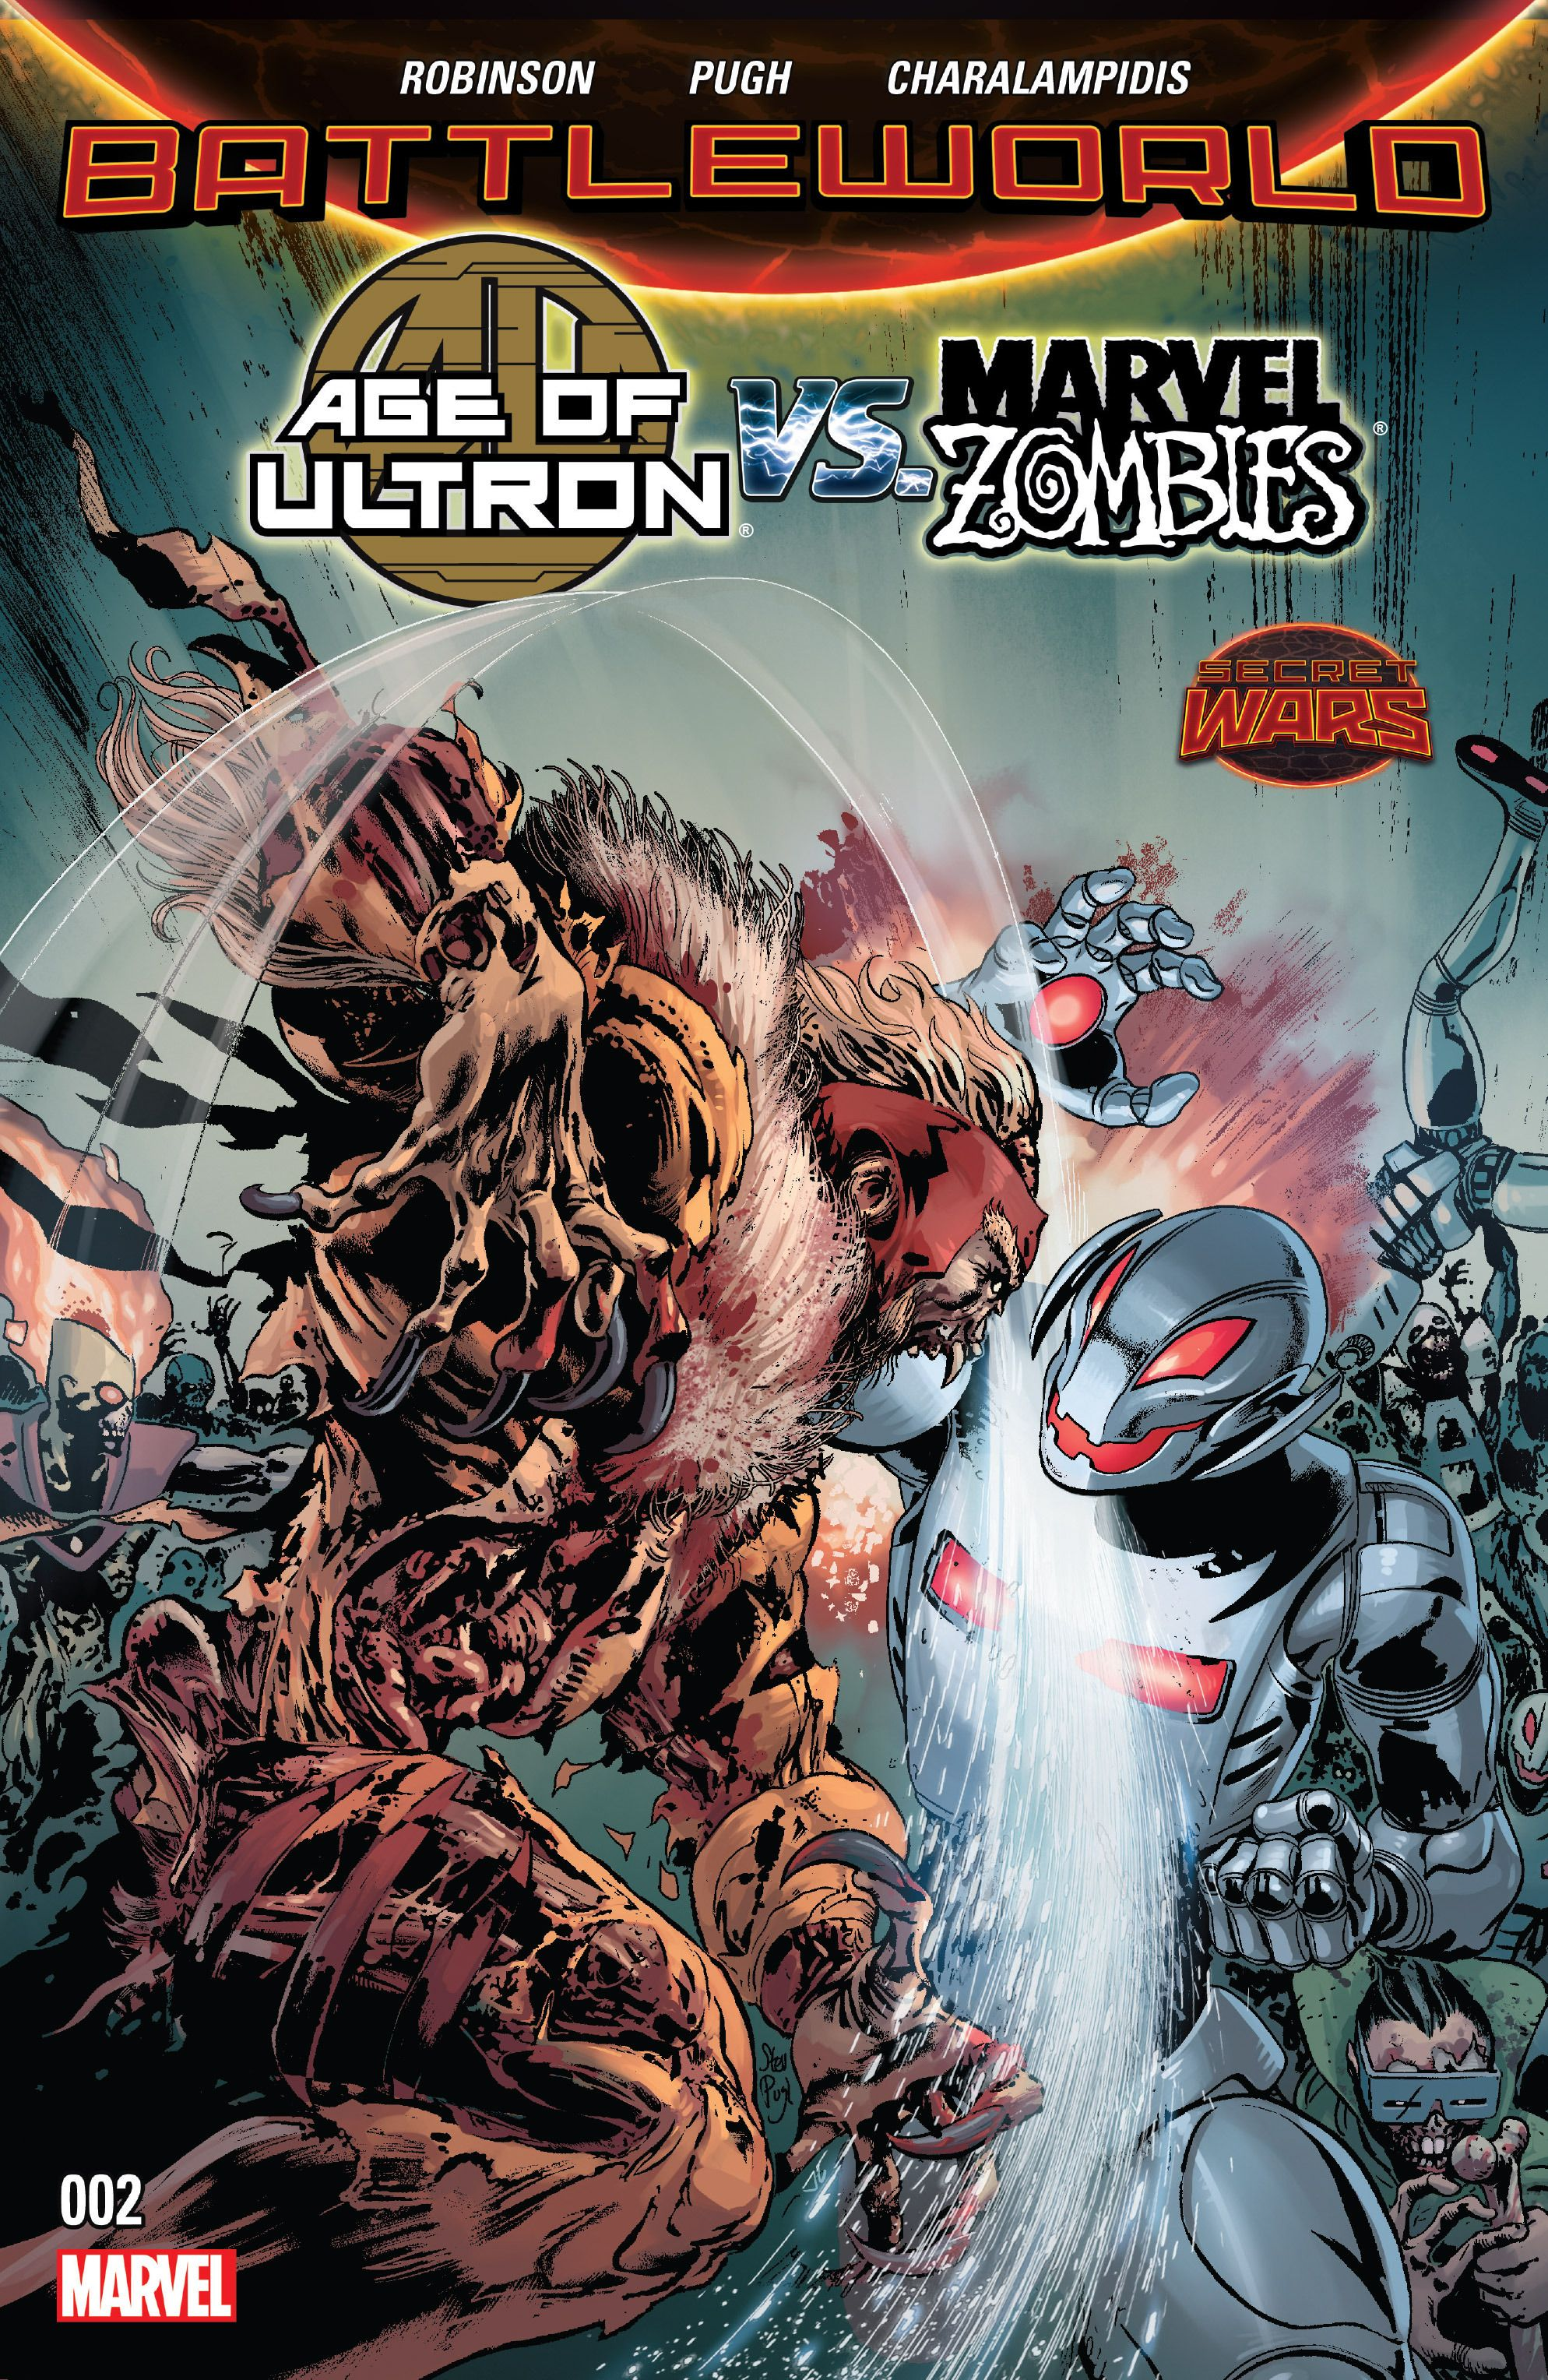 Marvel Zombies Viewcomic Reading Comics Online For Free 2019 Marvel Zombies Age Of Ultron Zombie